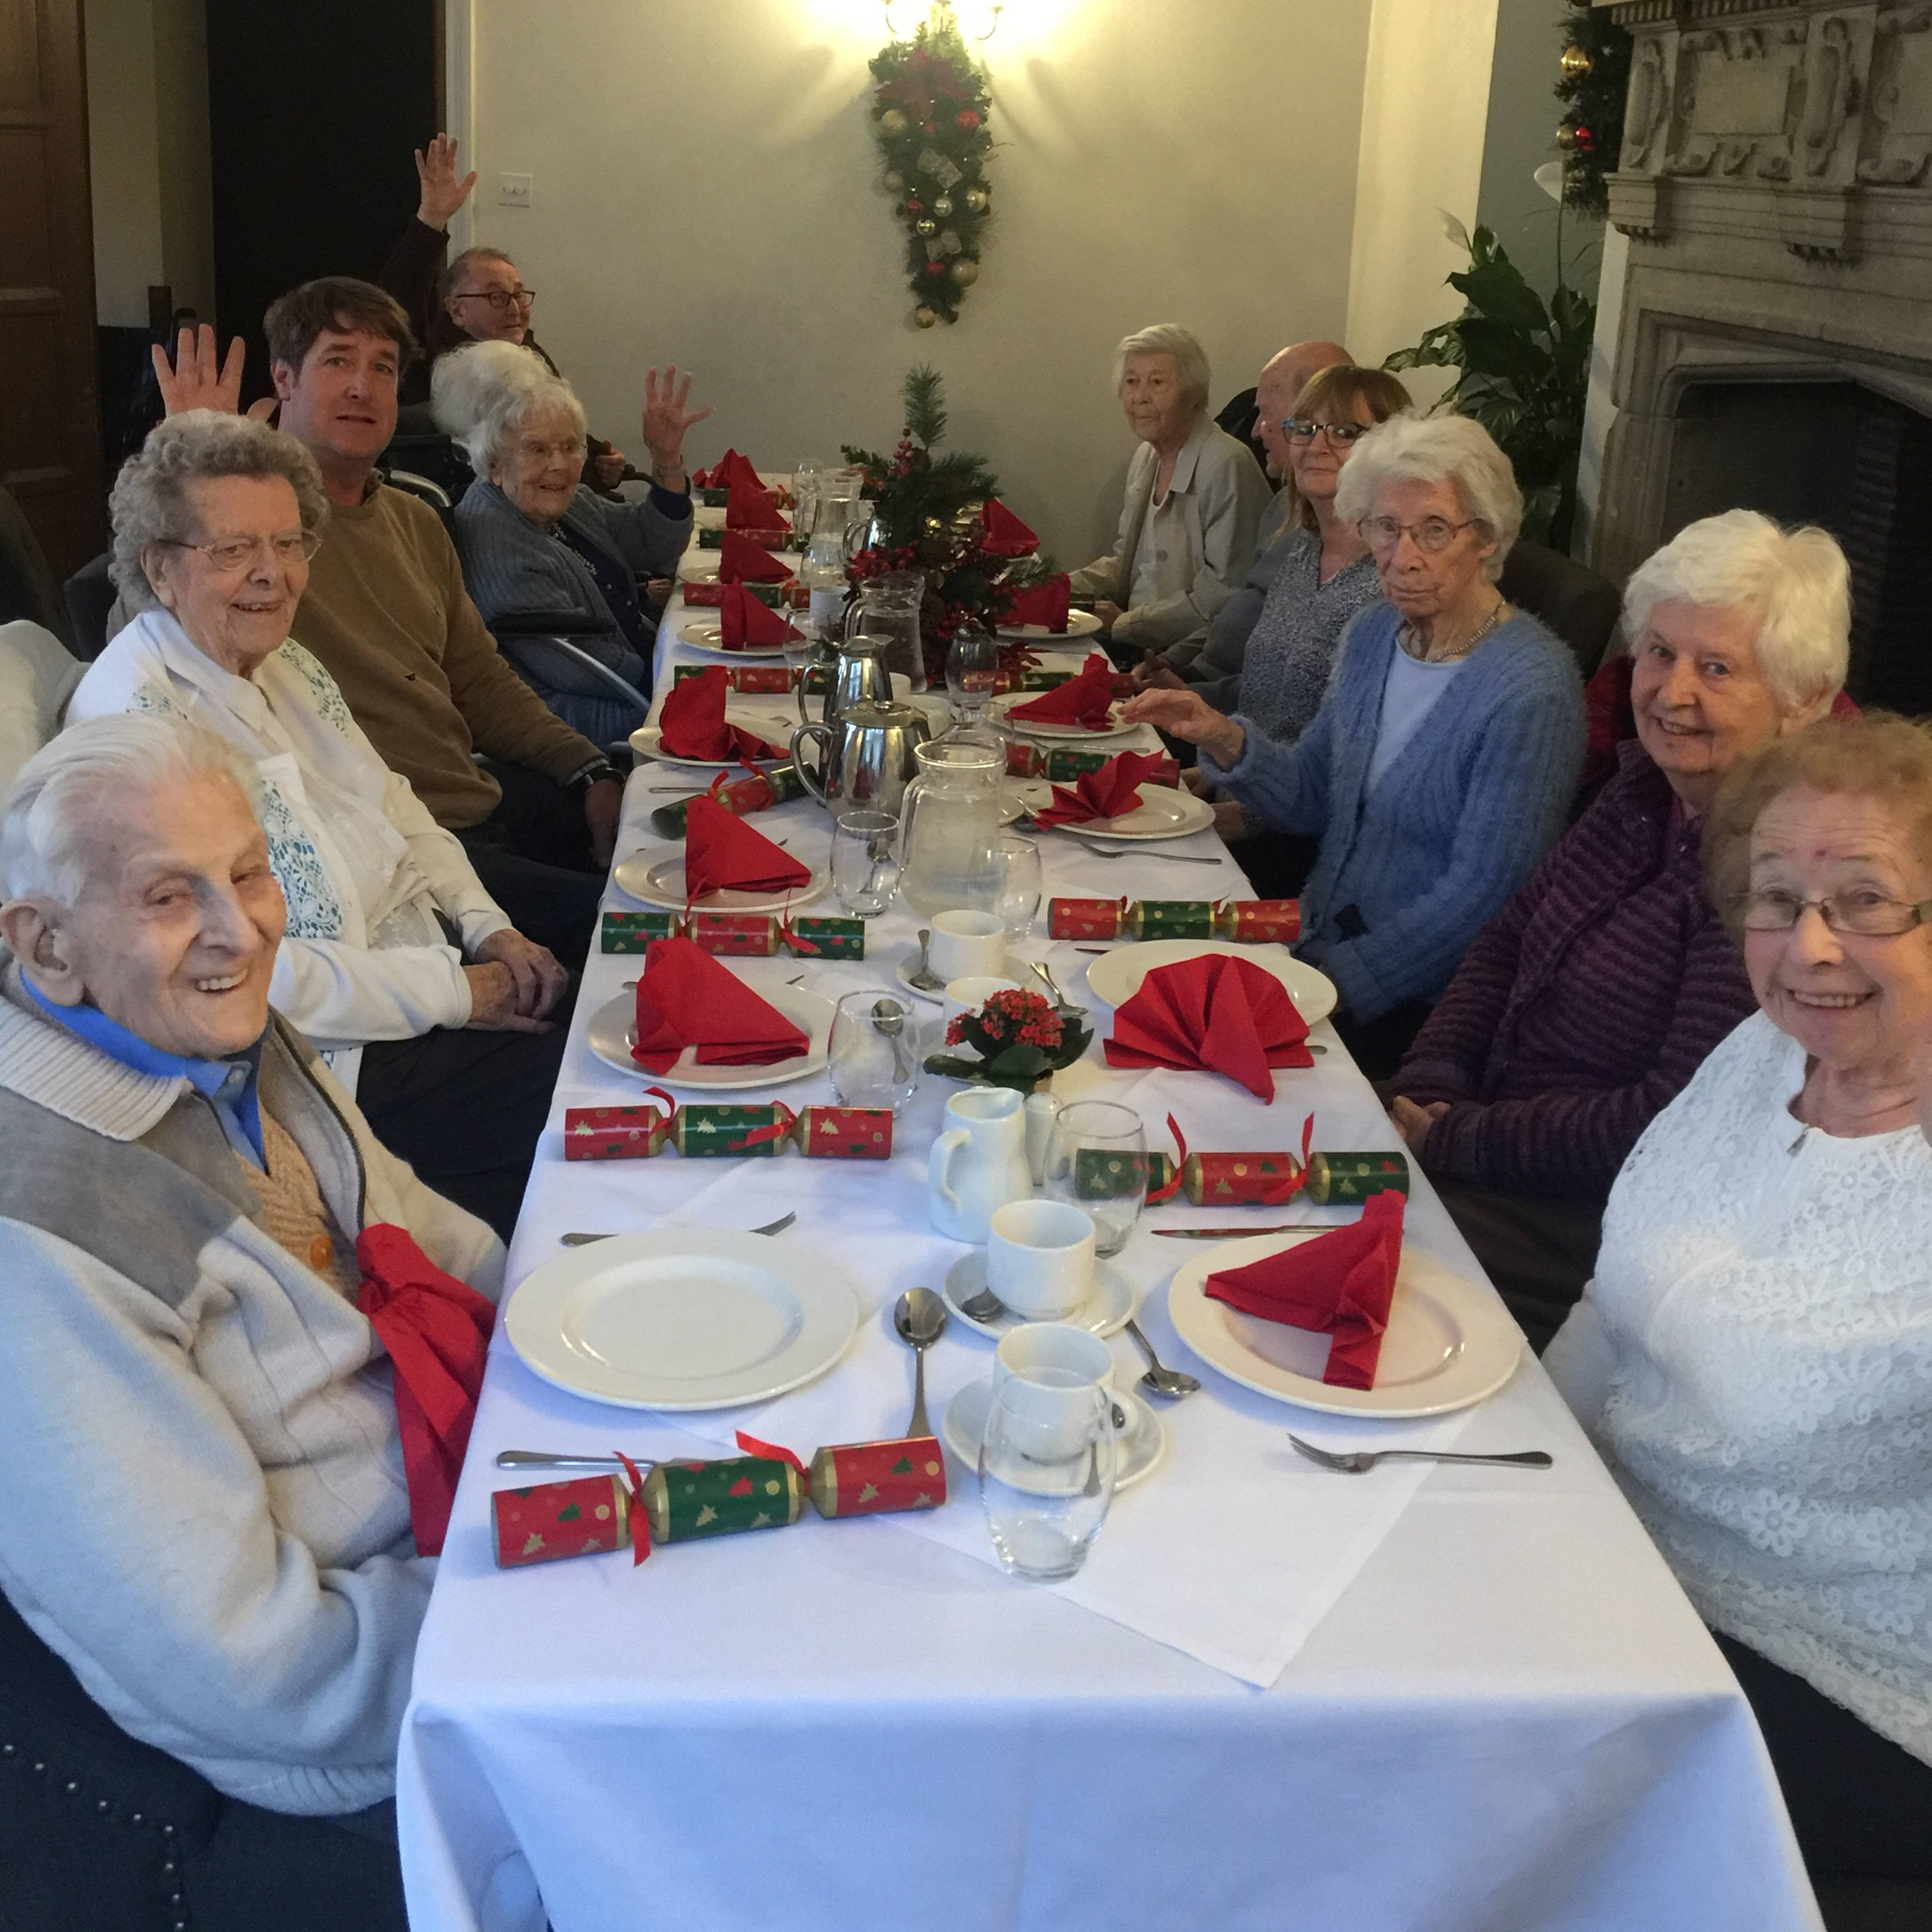 Afternoon Tea with the Blackbrook House residents